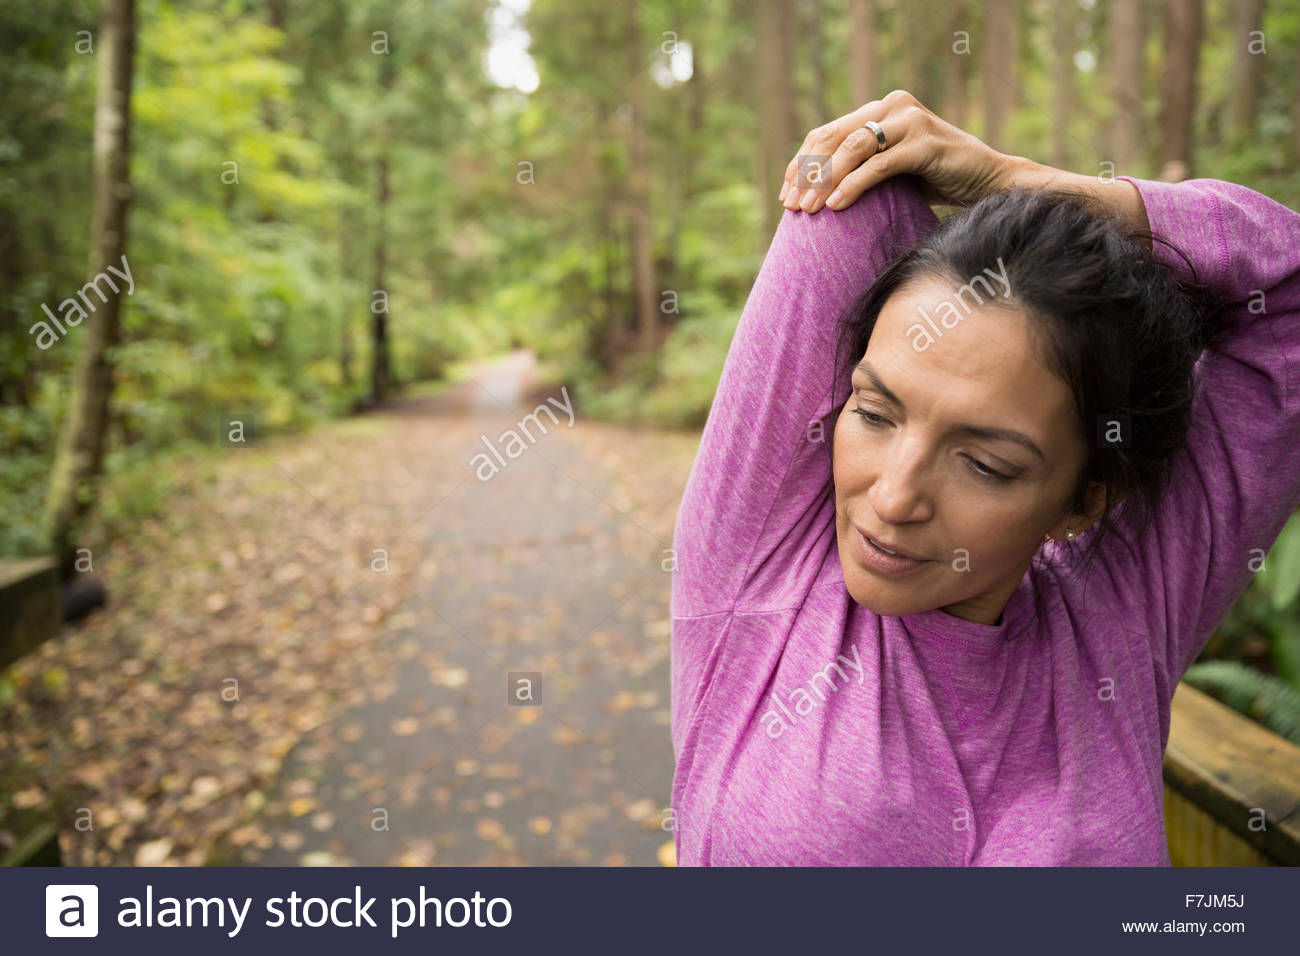 Woman stretching arms preparing for run in woods Stock Photo